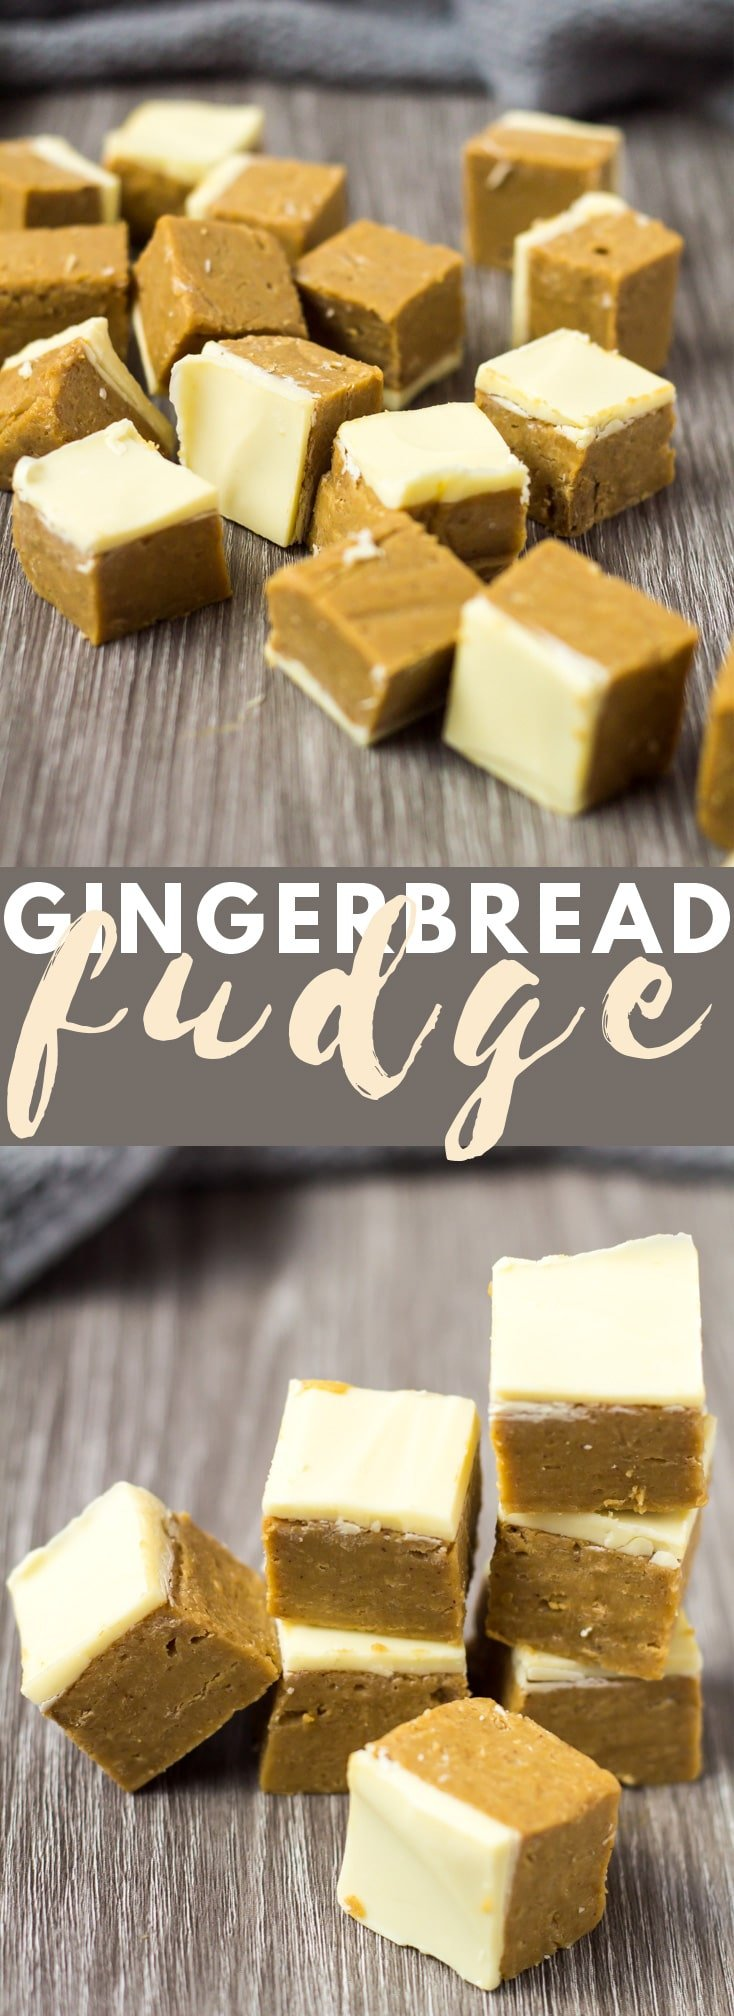 Gingerbread Fudge - Deliciously creamy gingerbread fudge that is made in the microwave, loaded with flavour, and finished off with a white chocolate topping!